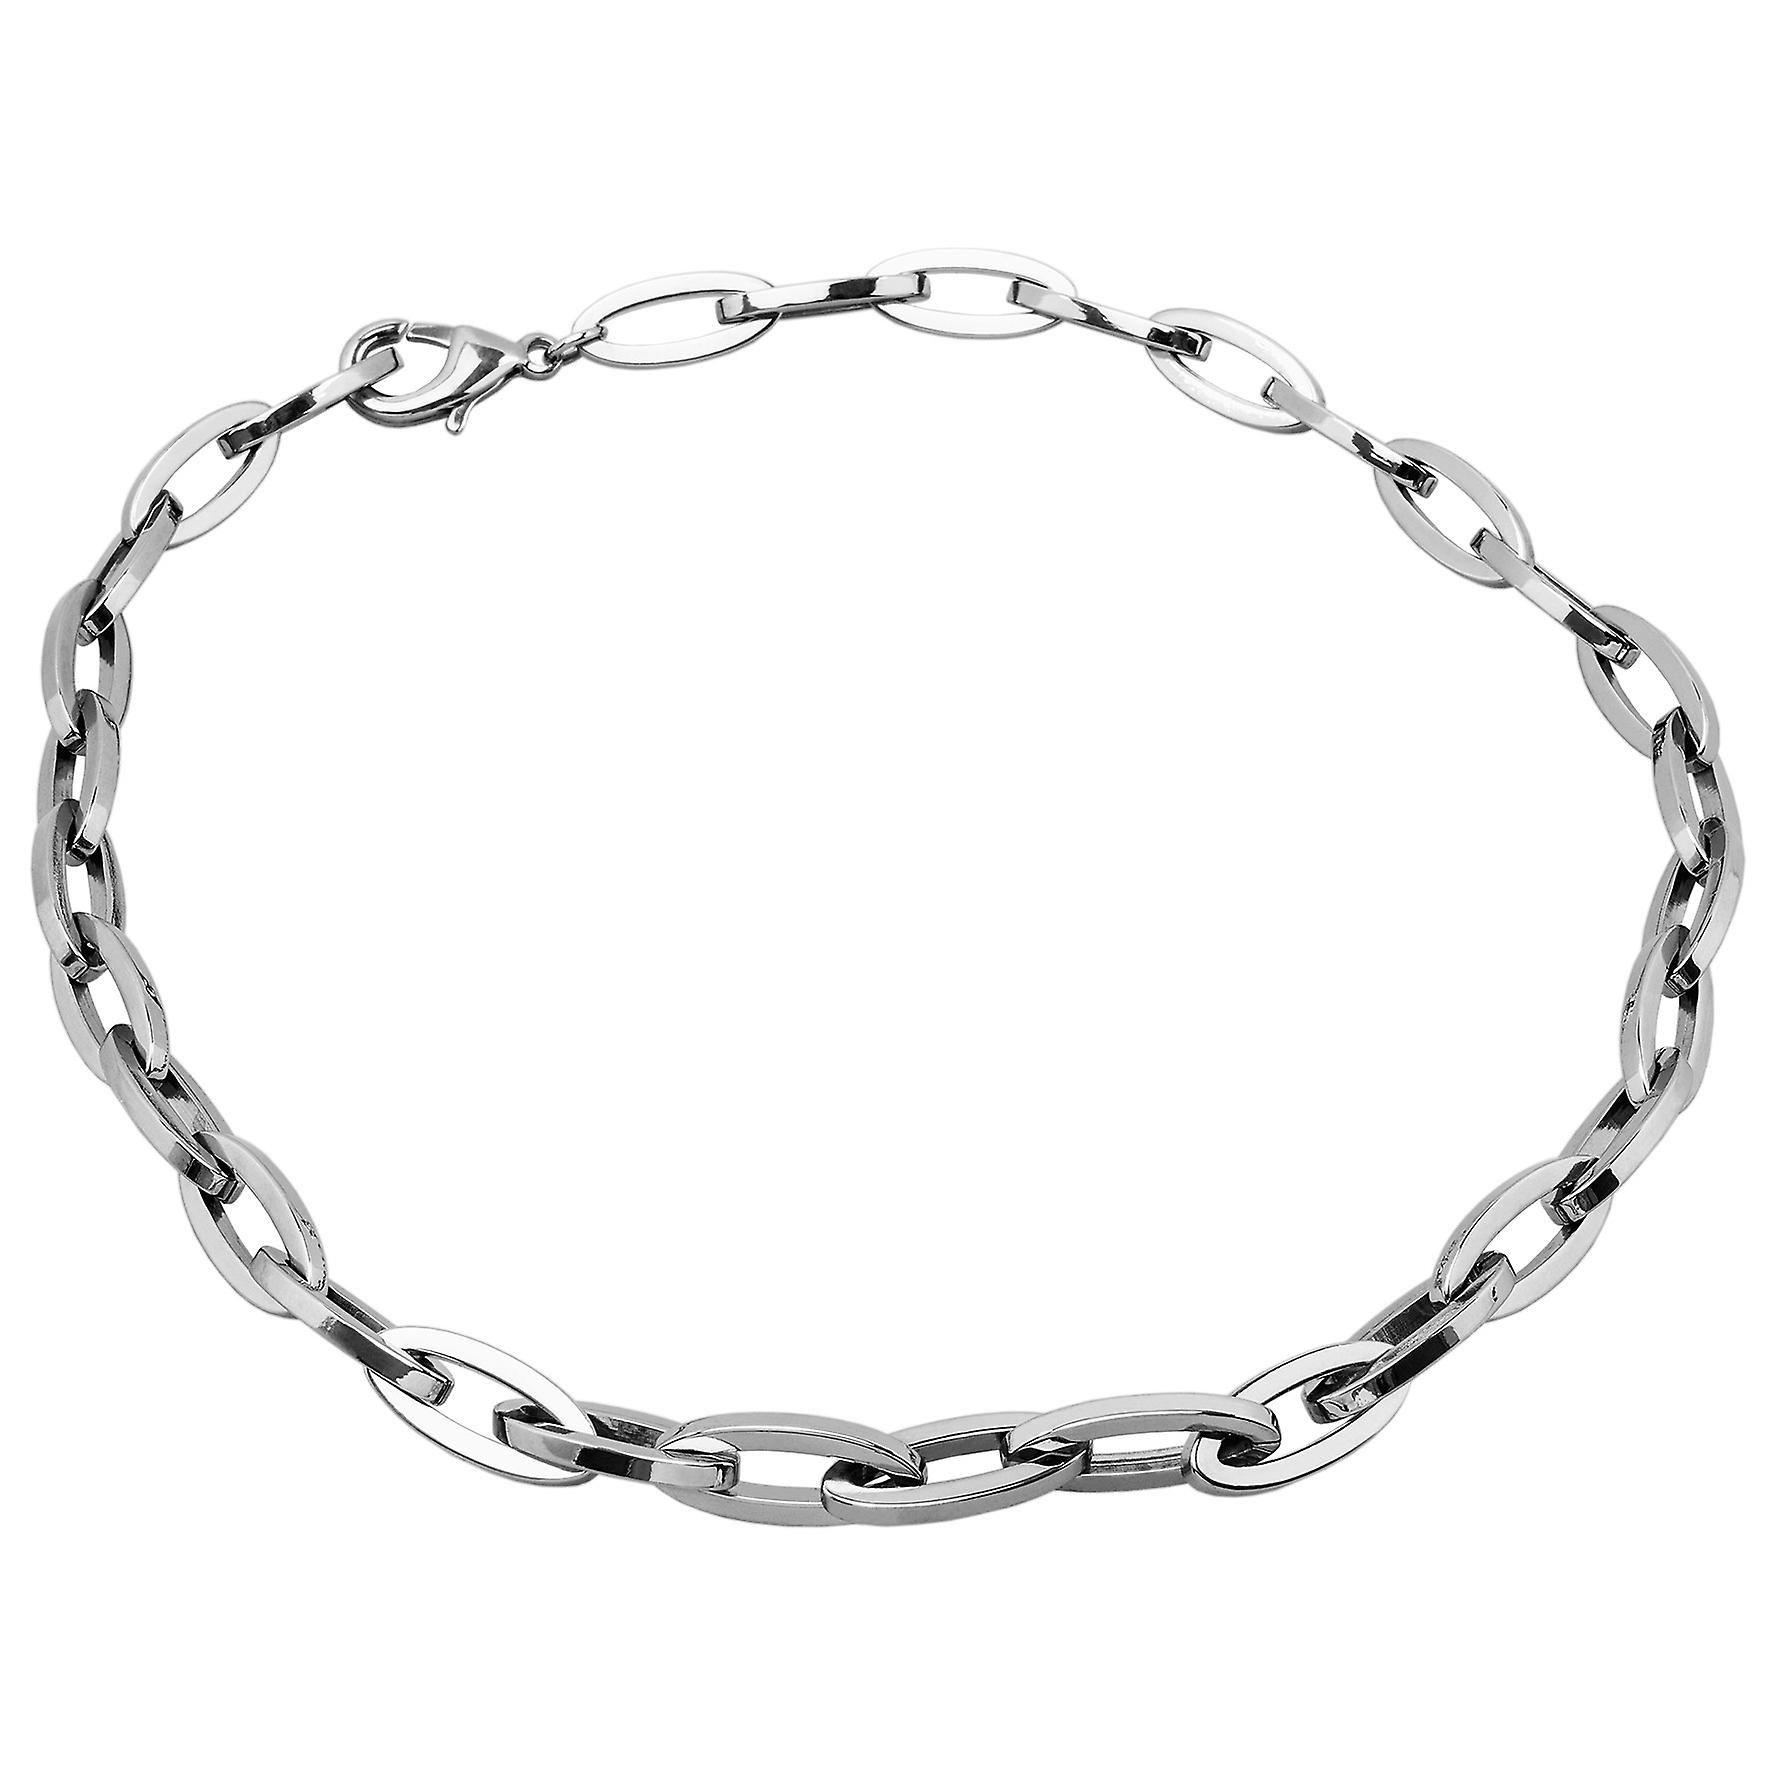 Burgmeister stainless steel chain, JHE1115-449